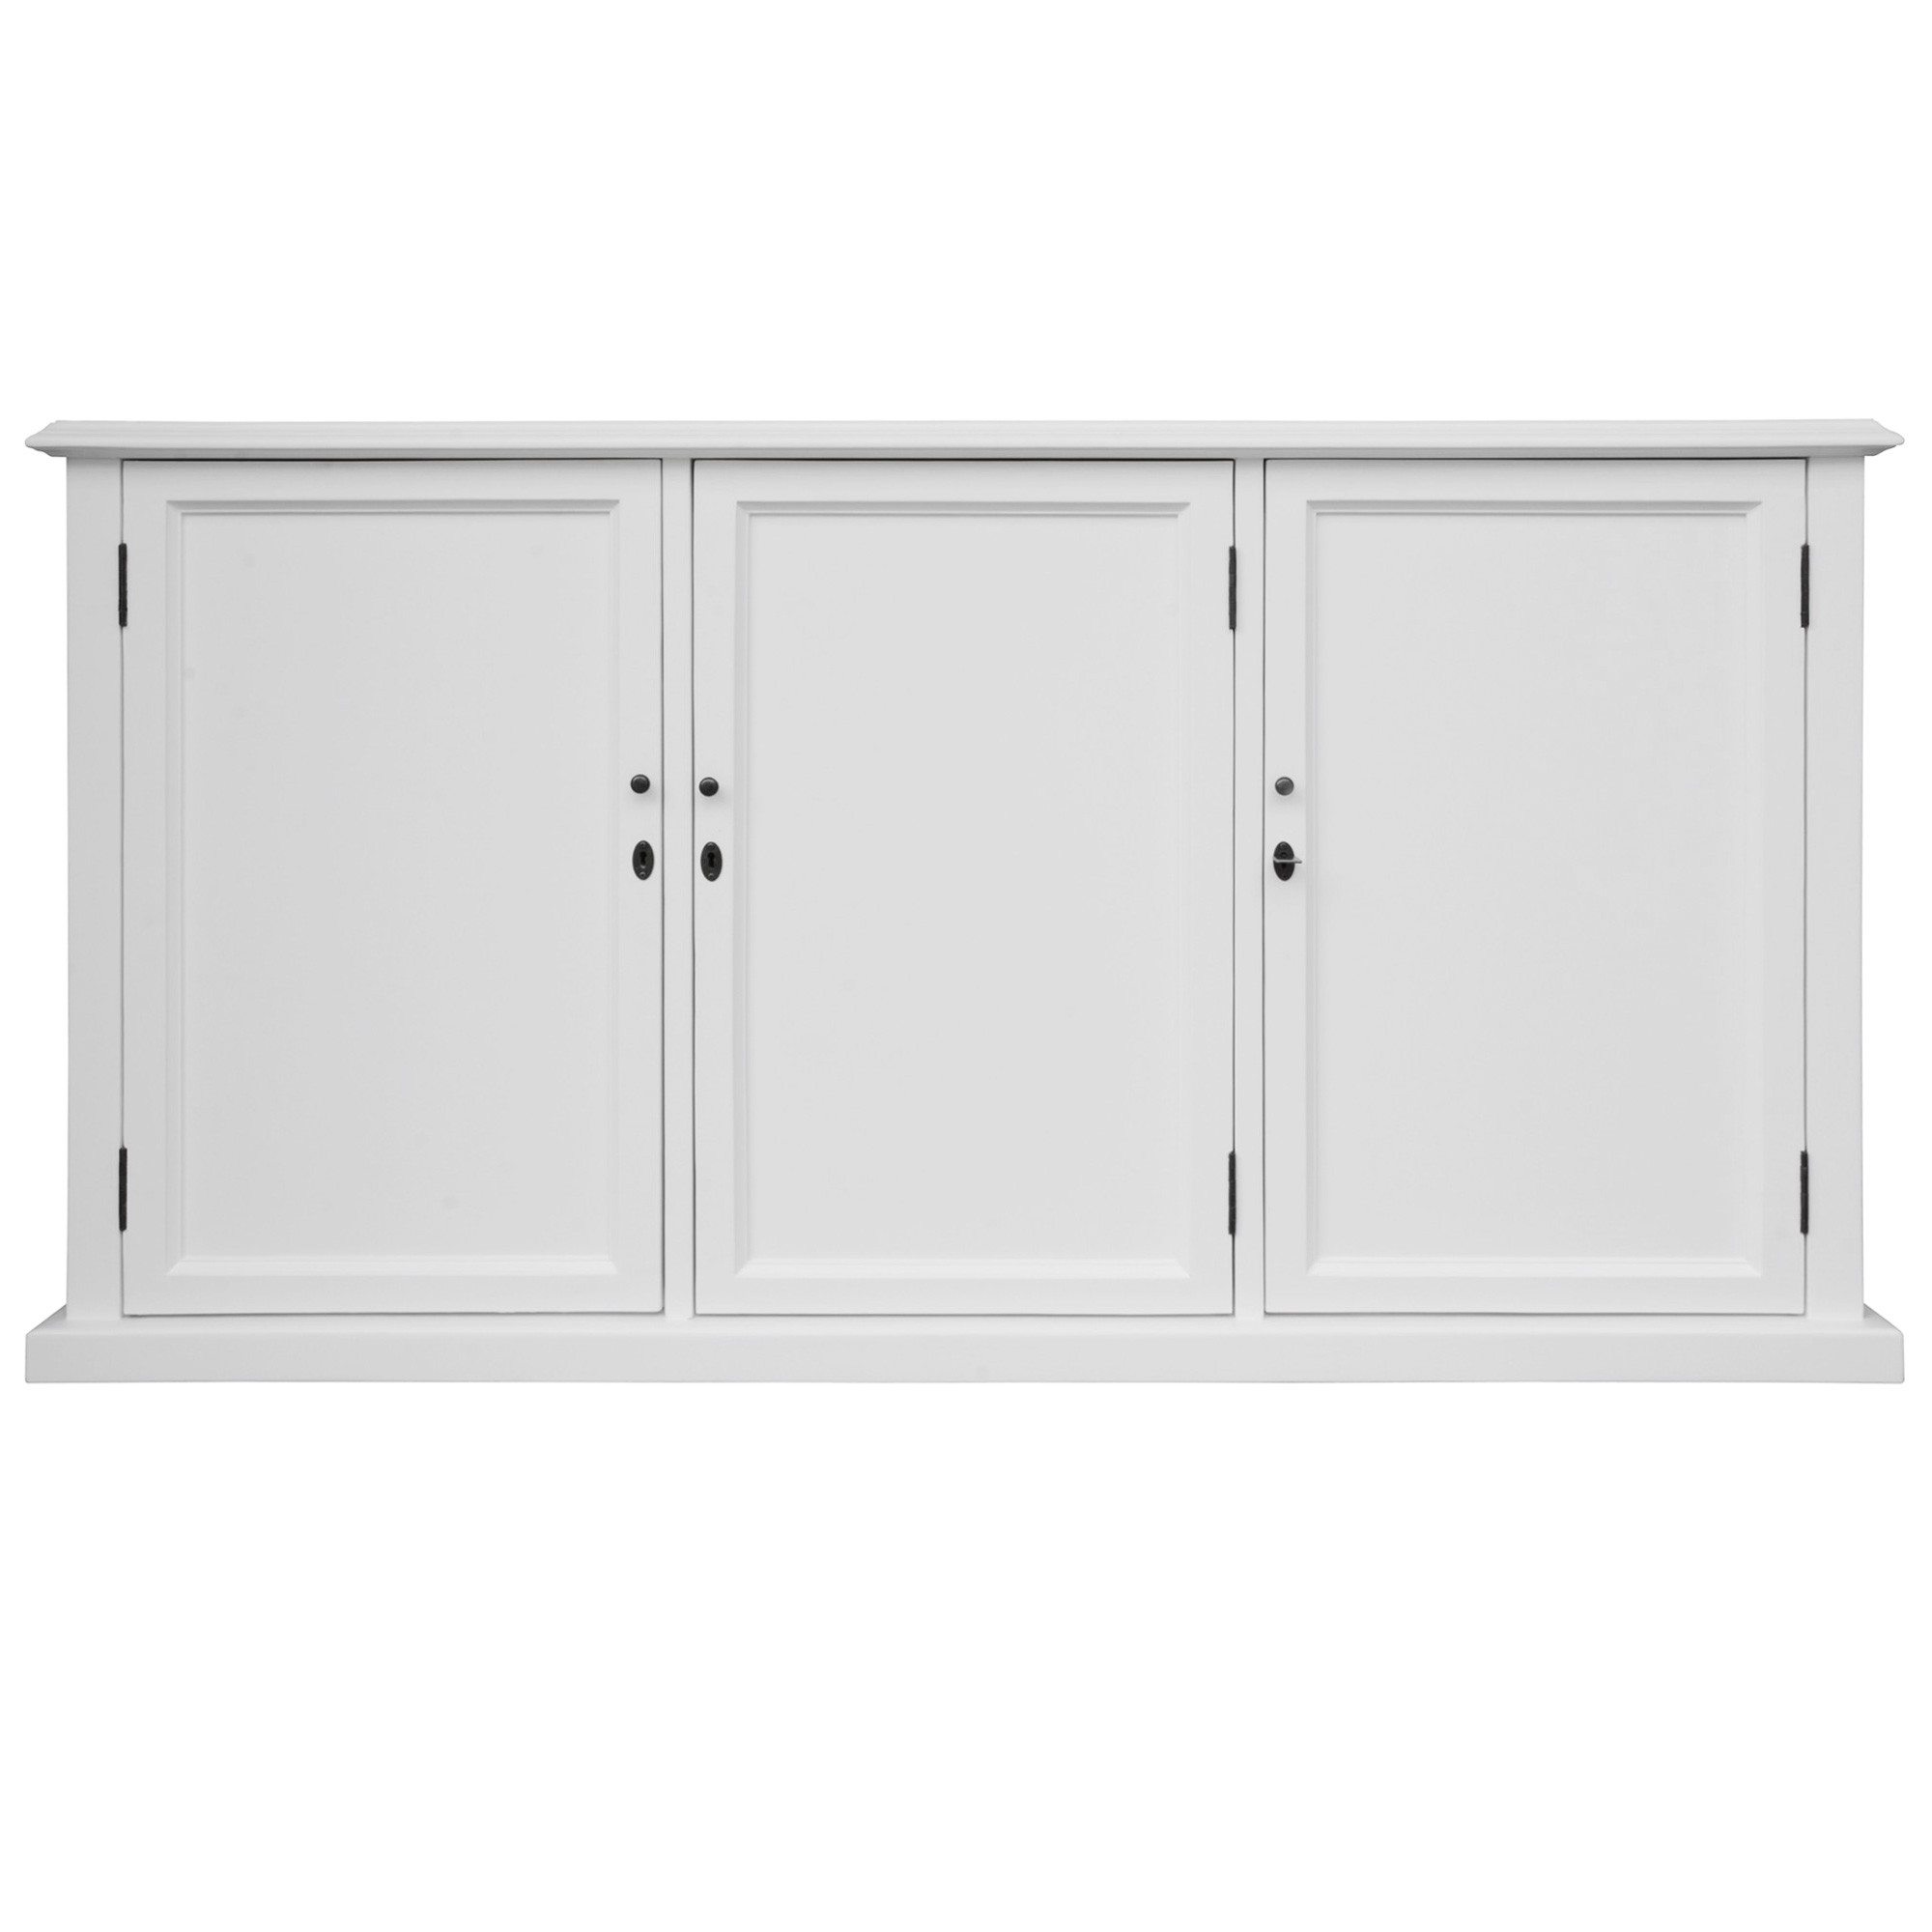 Stroud Acacia Timber 3 Solid Door Sideboard, 172cm, White